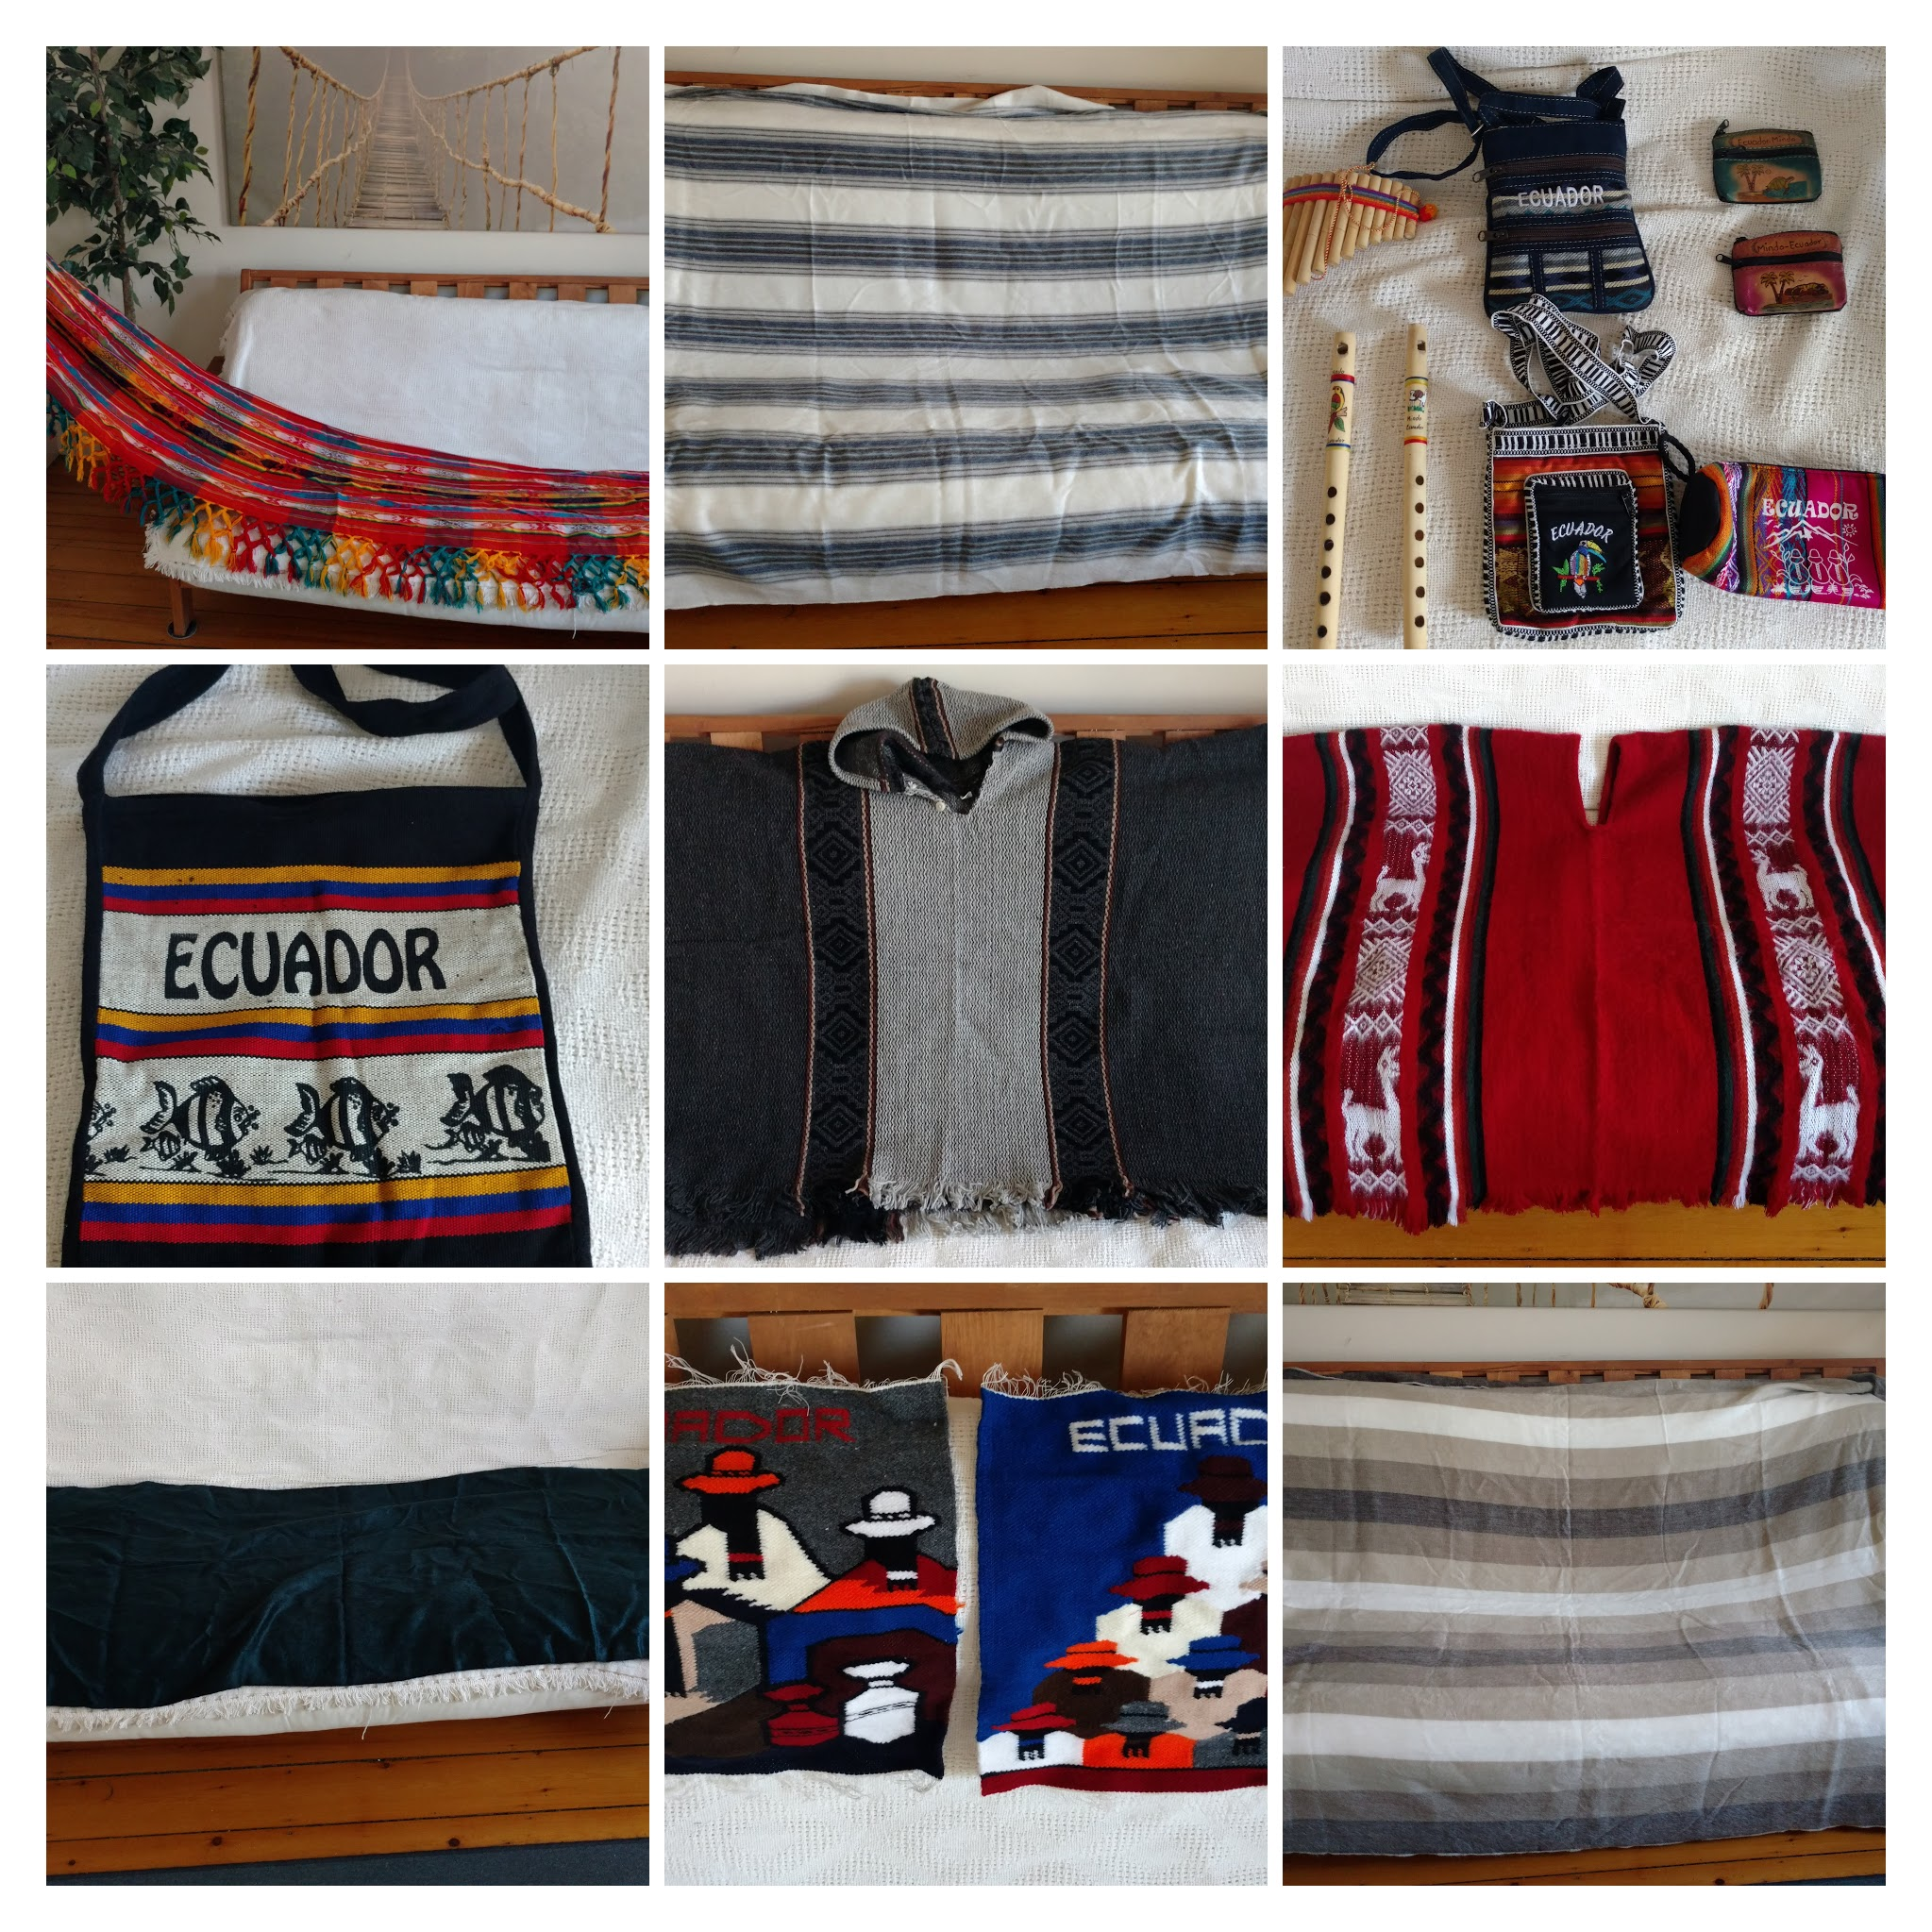 Artisan Items - I've brought back some wonderful artisan items to help with fundraising ideas. Your thoughts are welcome!